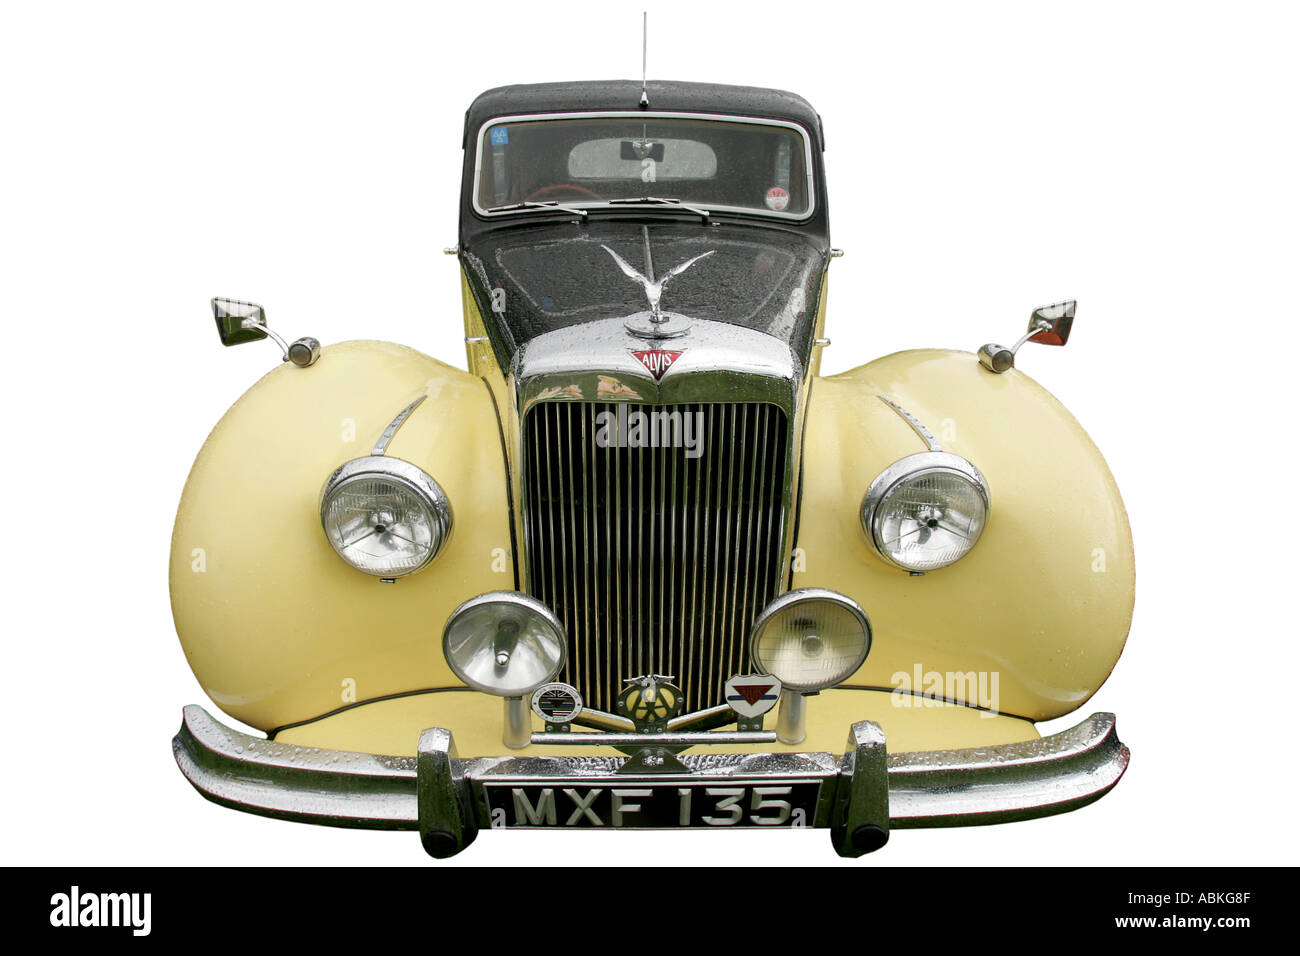 old sport car classic history vehicle vintage antipodes symbol ...